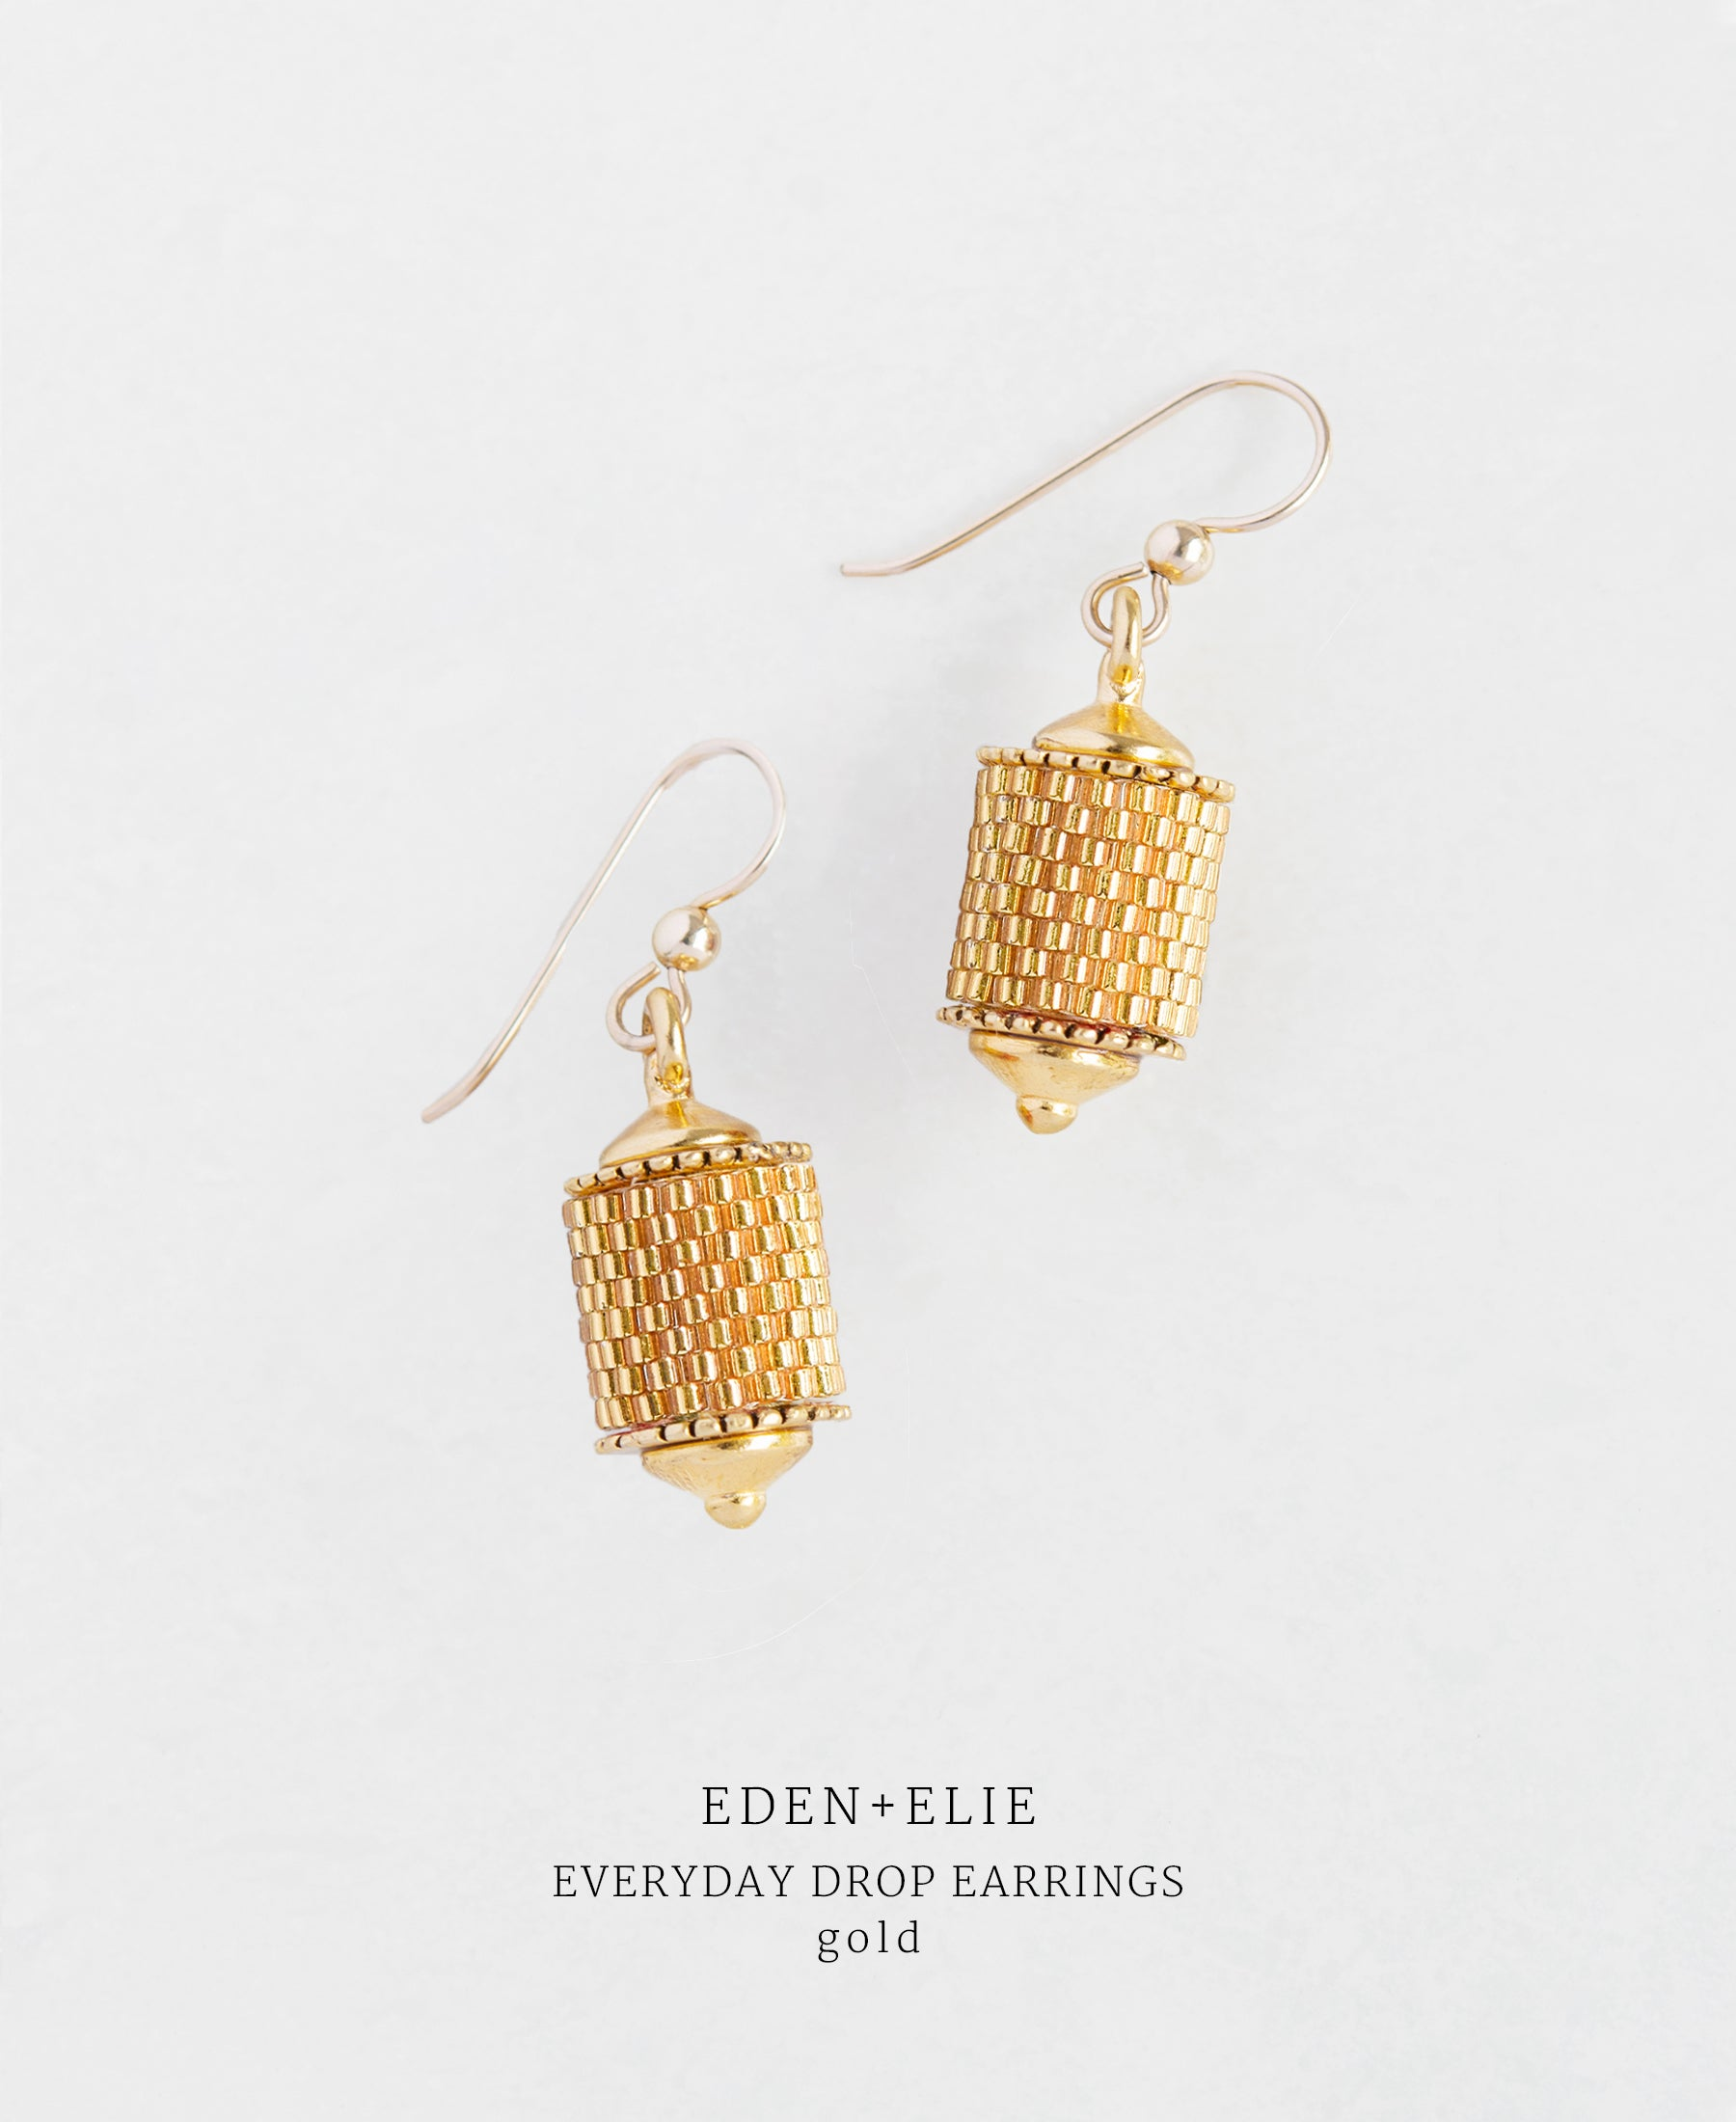 EDEN + ELIE Everyday drop earrings - gold